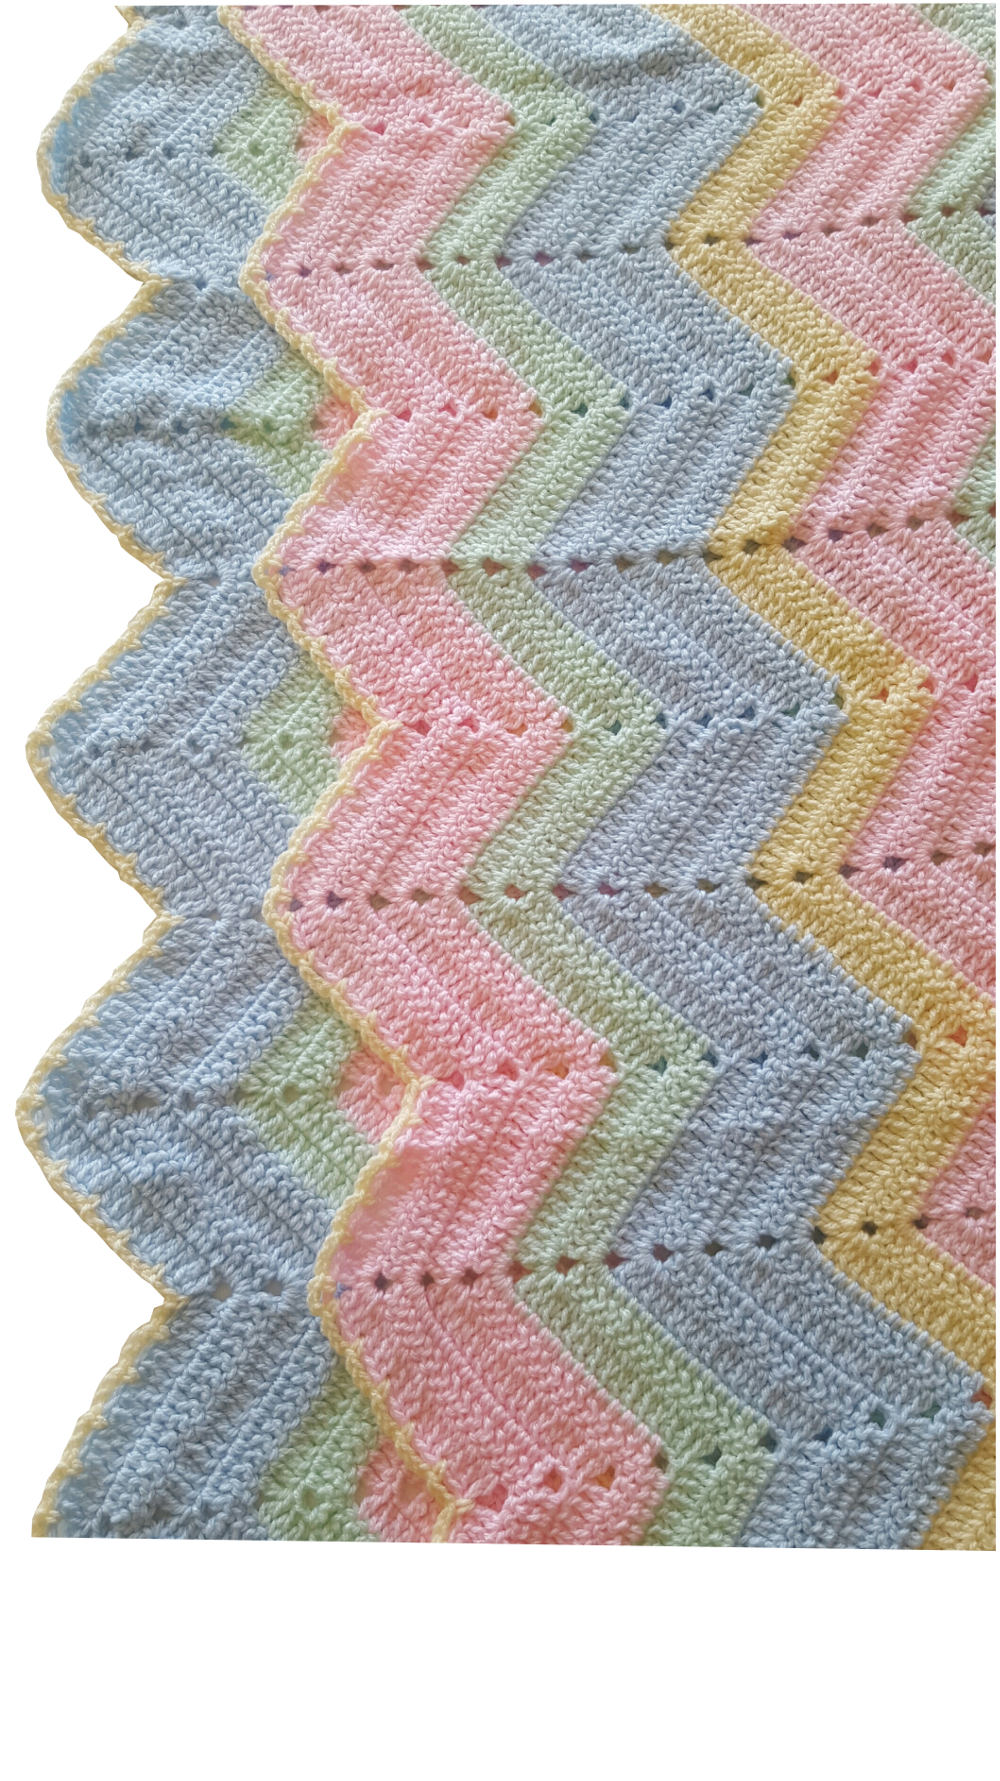 Vintage Look Zig Zag Crochet Blanket Pastels Pink Blue Yellow And